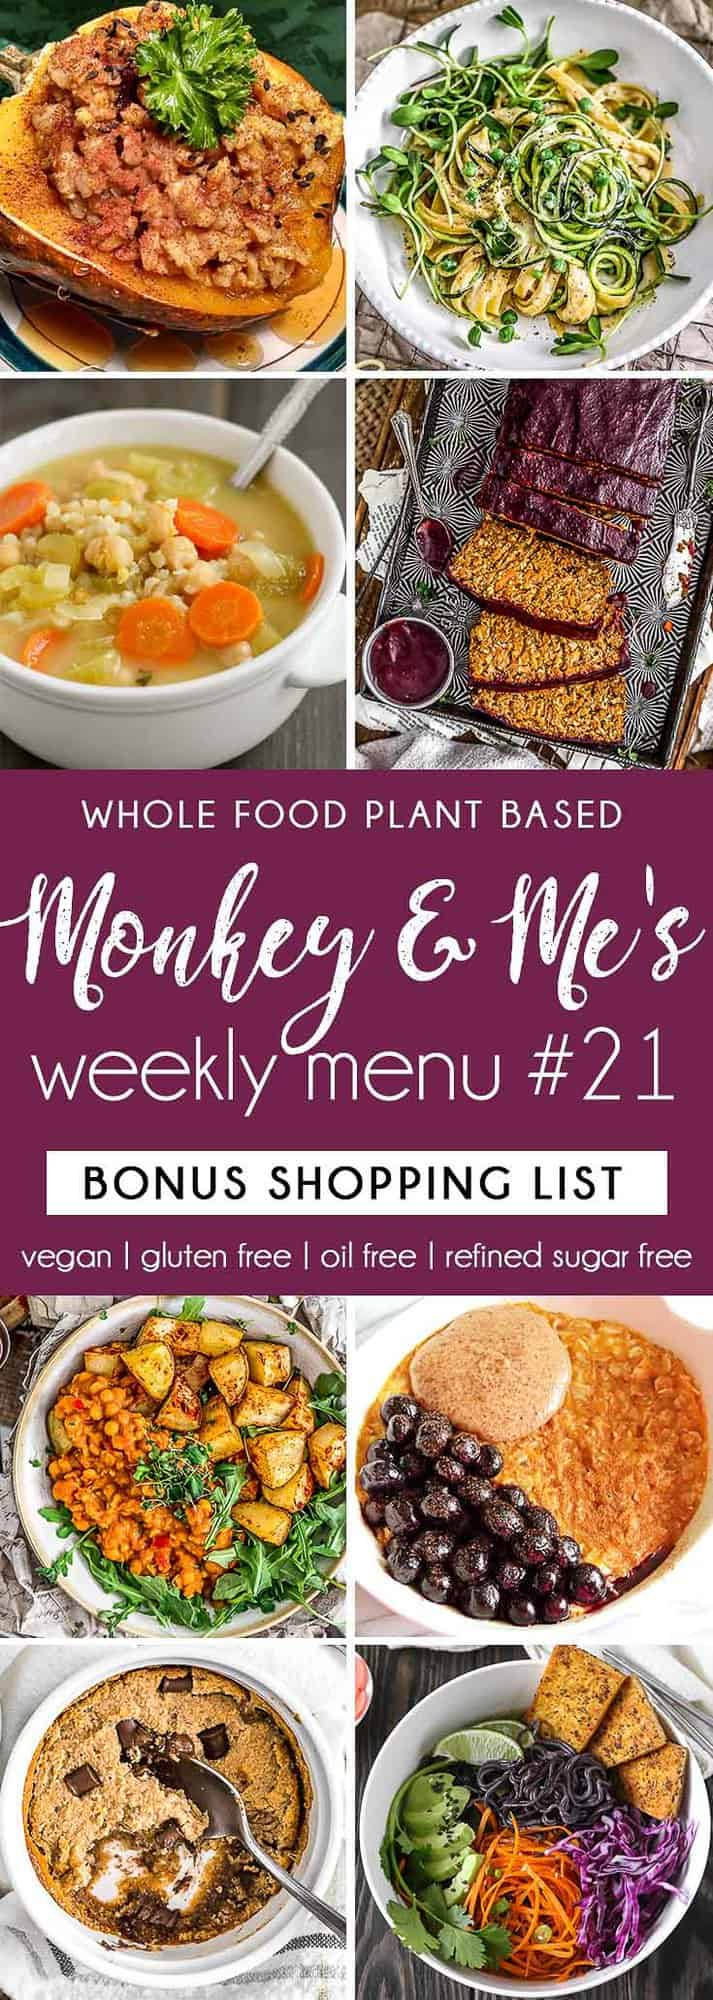 Monkey and Me's Menu 21 featuring 8 recipes